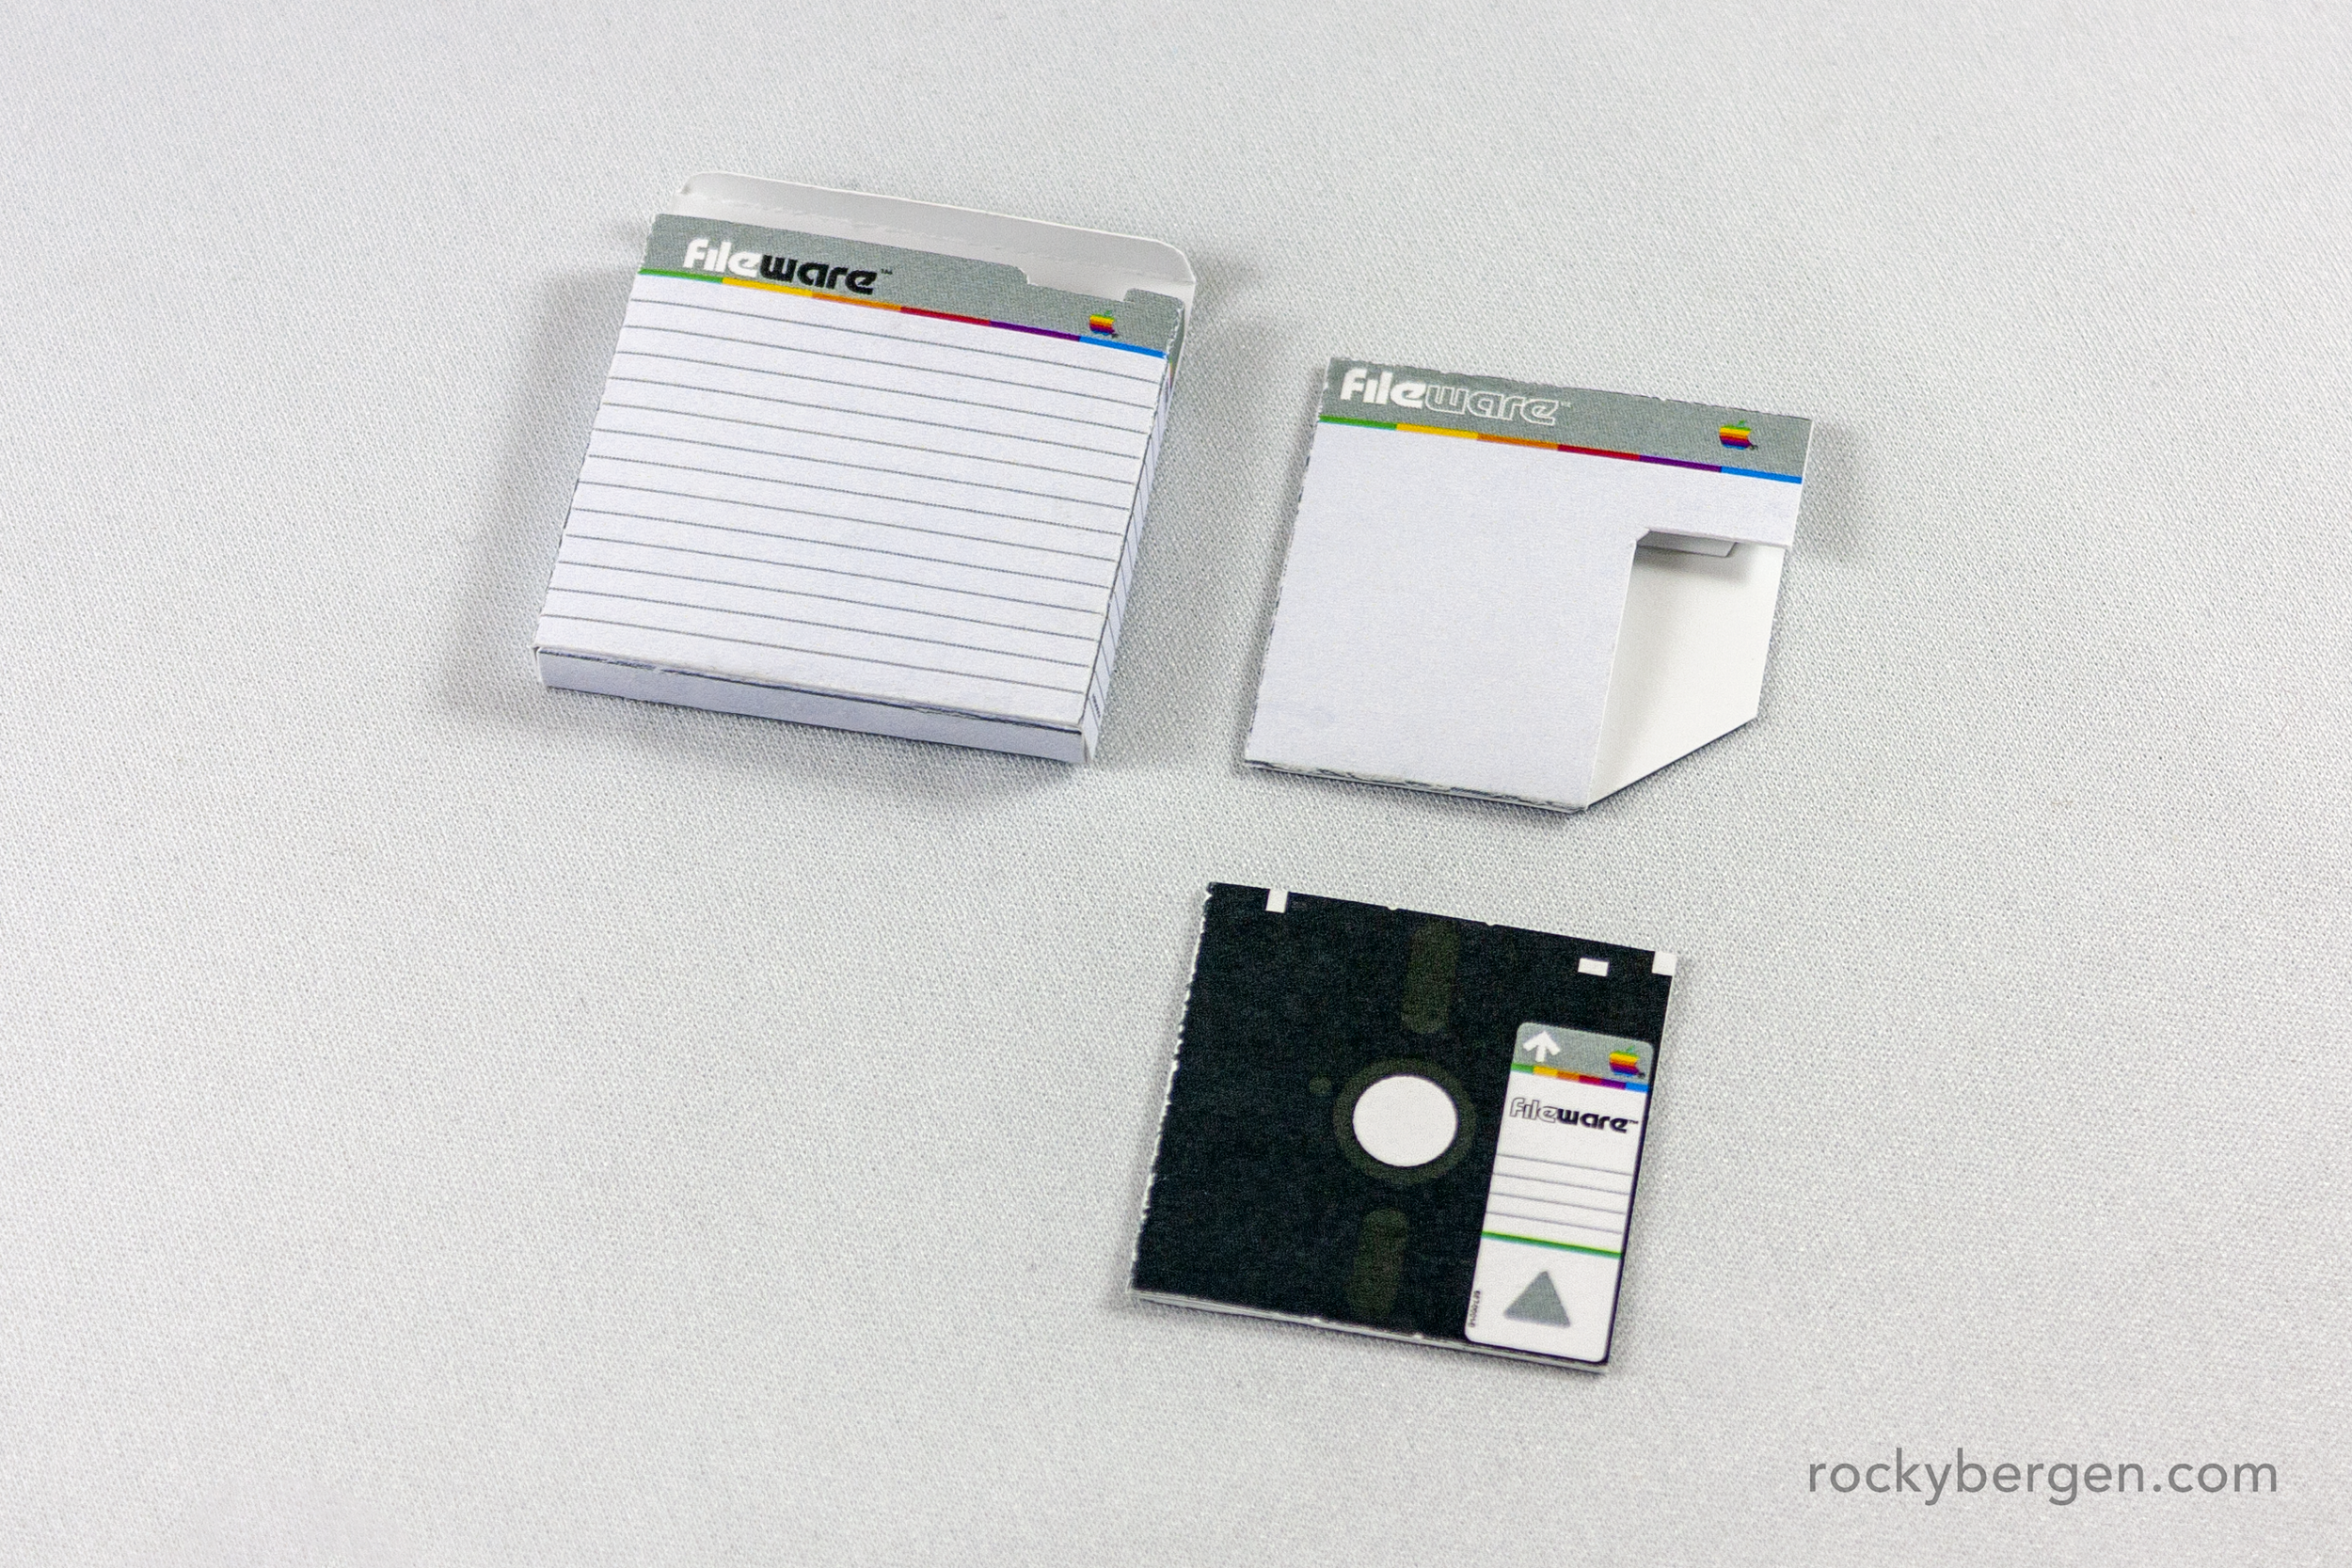 Fileware disks - While they look a lot like common floppy disks, Fileware disks were a proprietary Lisa format and were prone to failure.